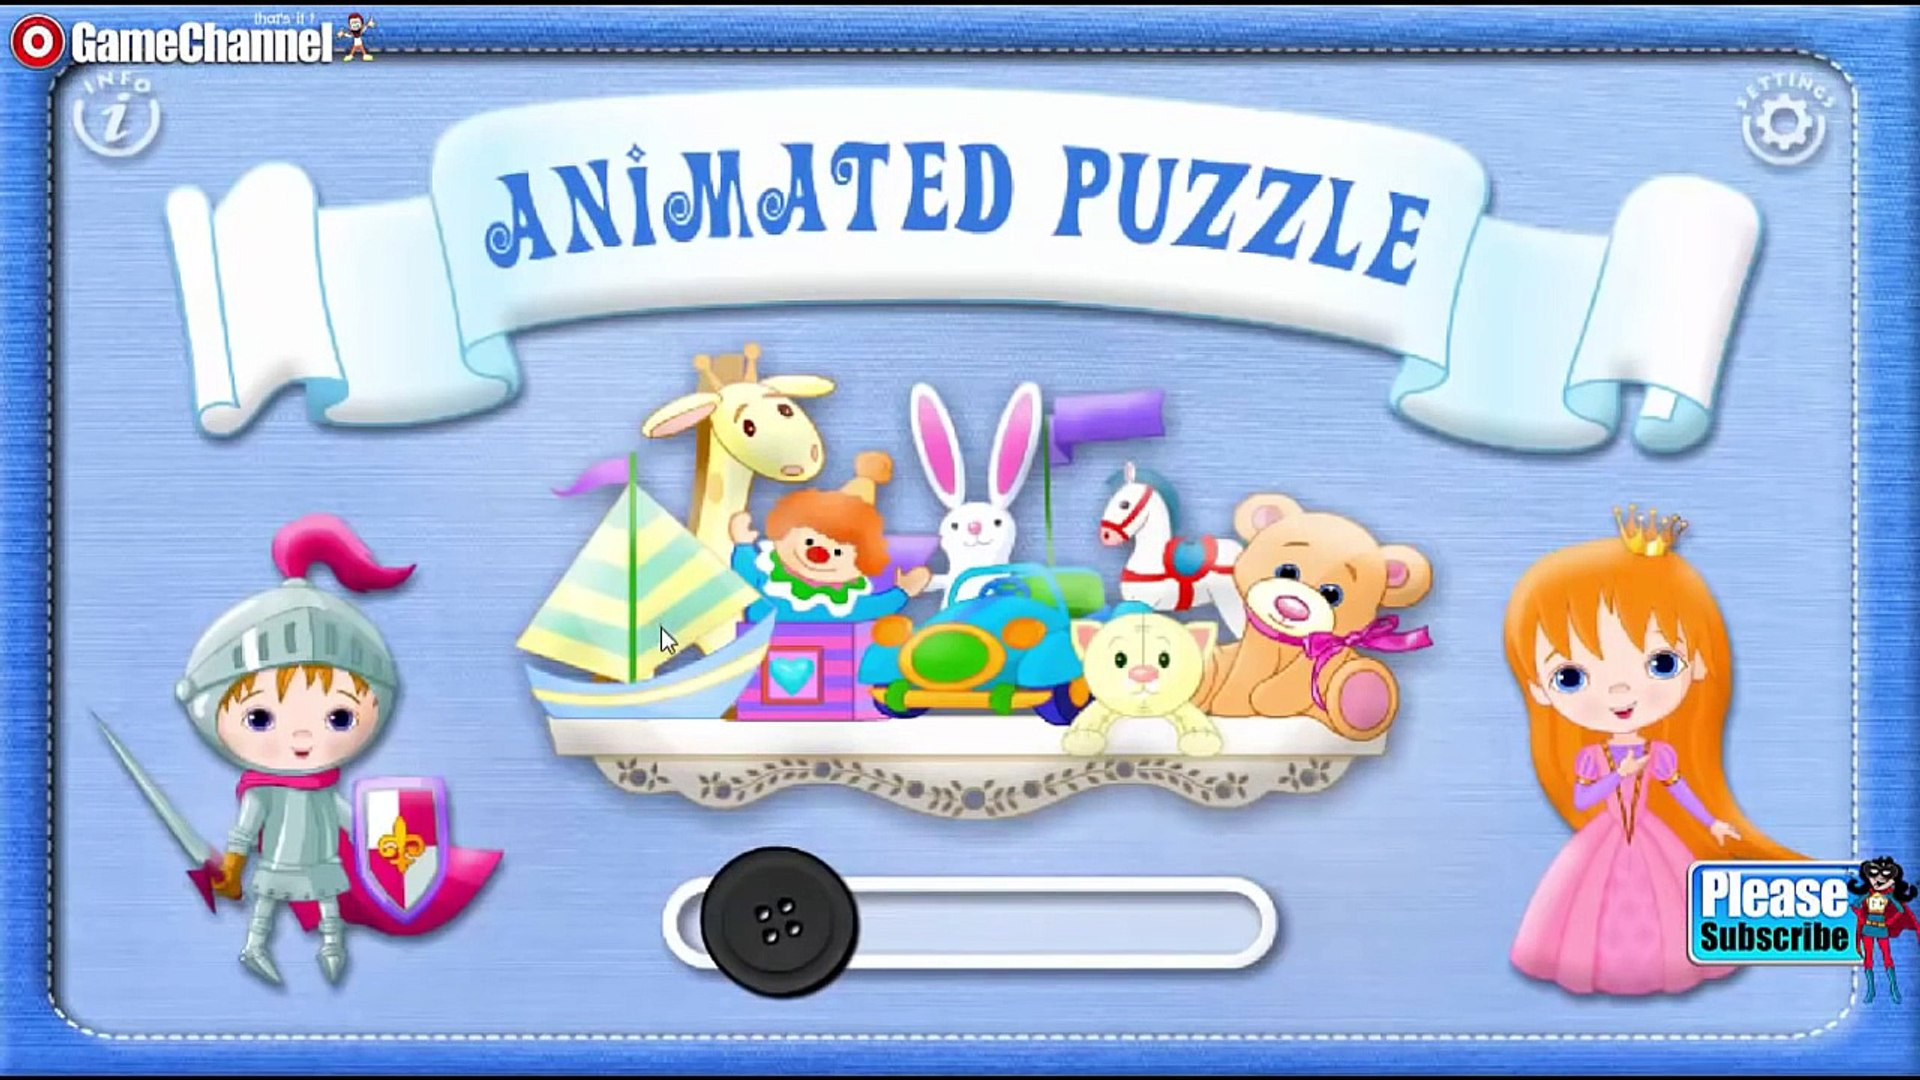 Kids Animated Puzzle Toddlers CFC s.r.o. Education Games Android Mental Developer Games For Kids